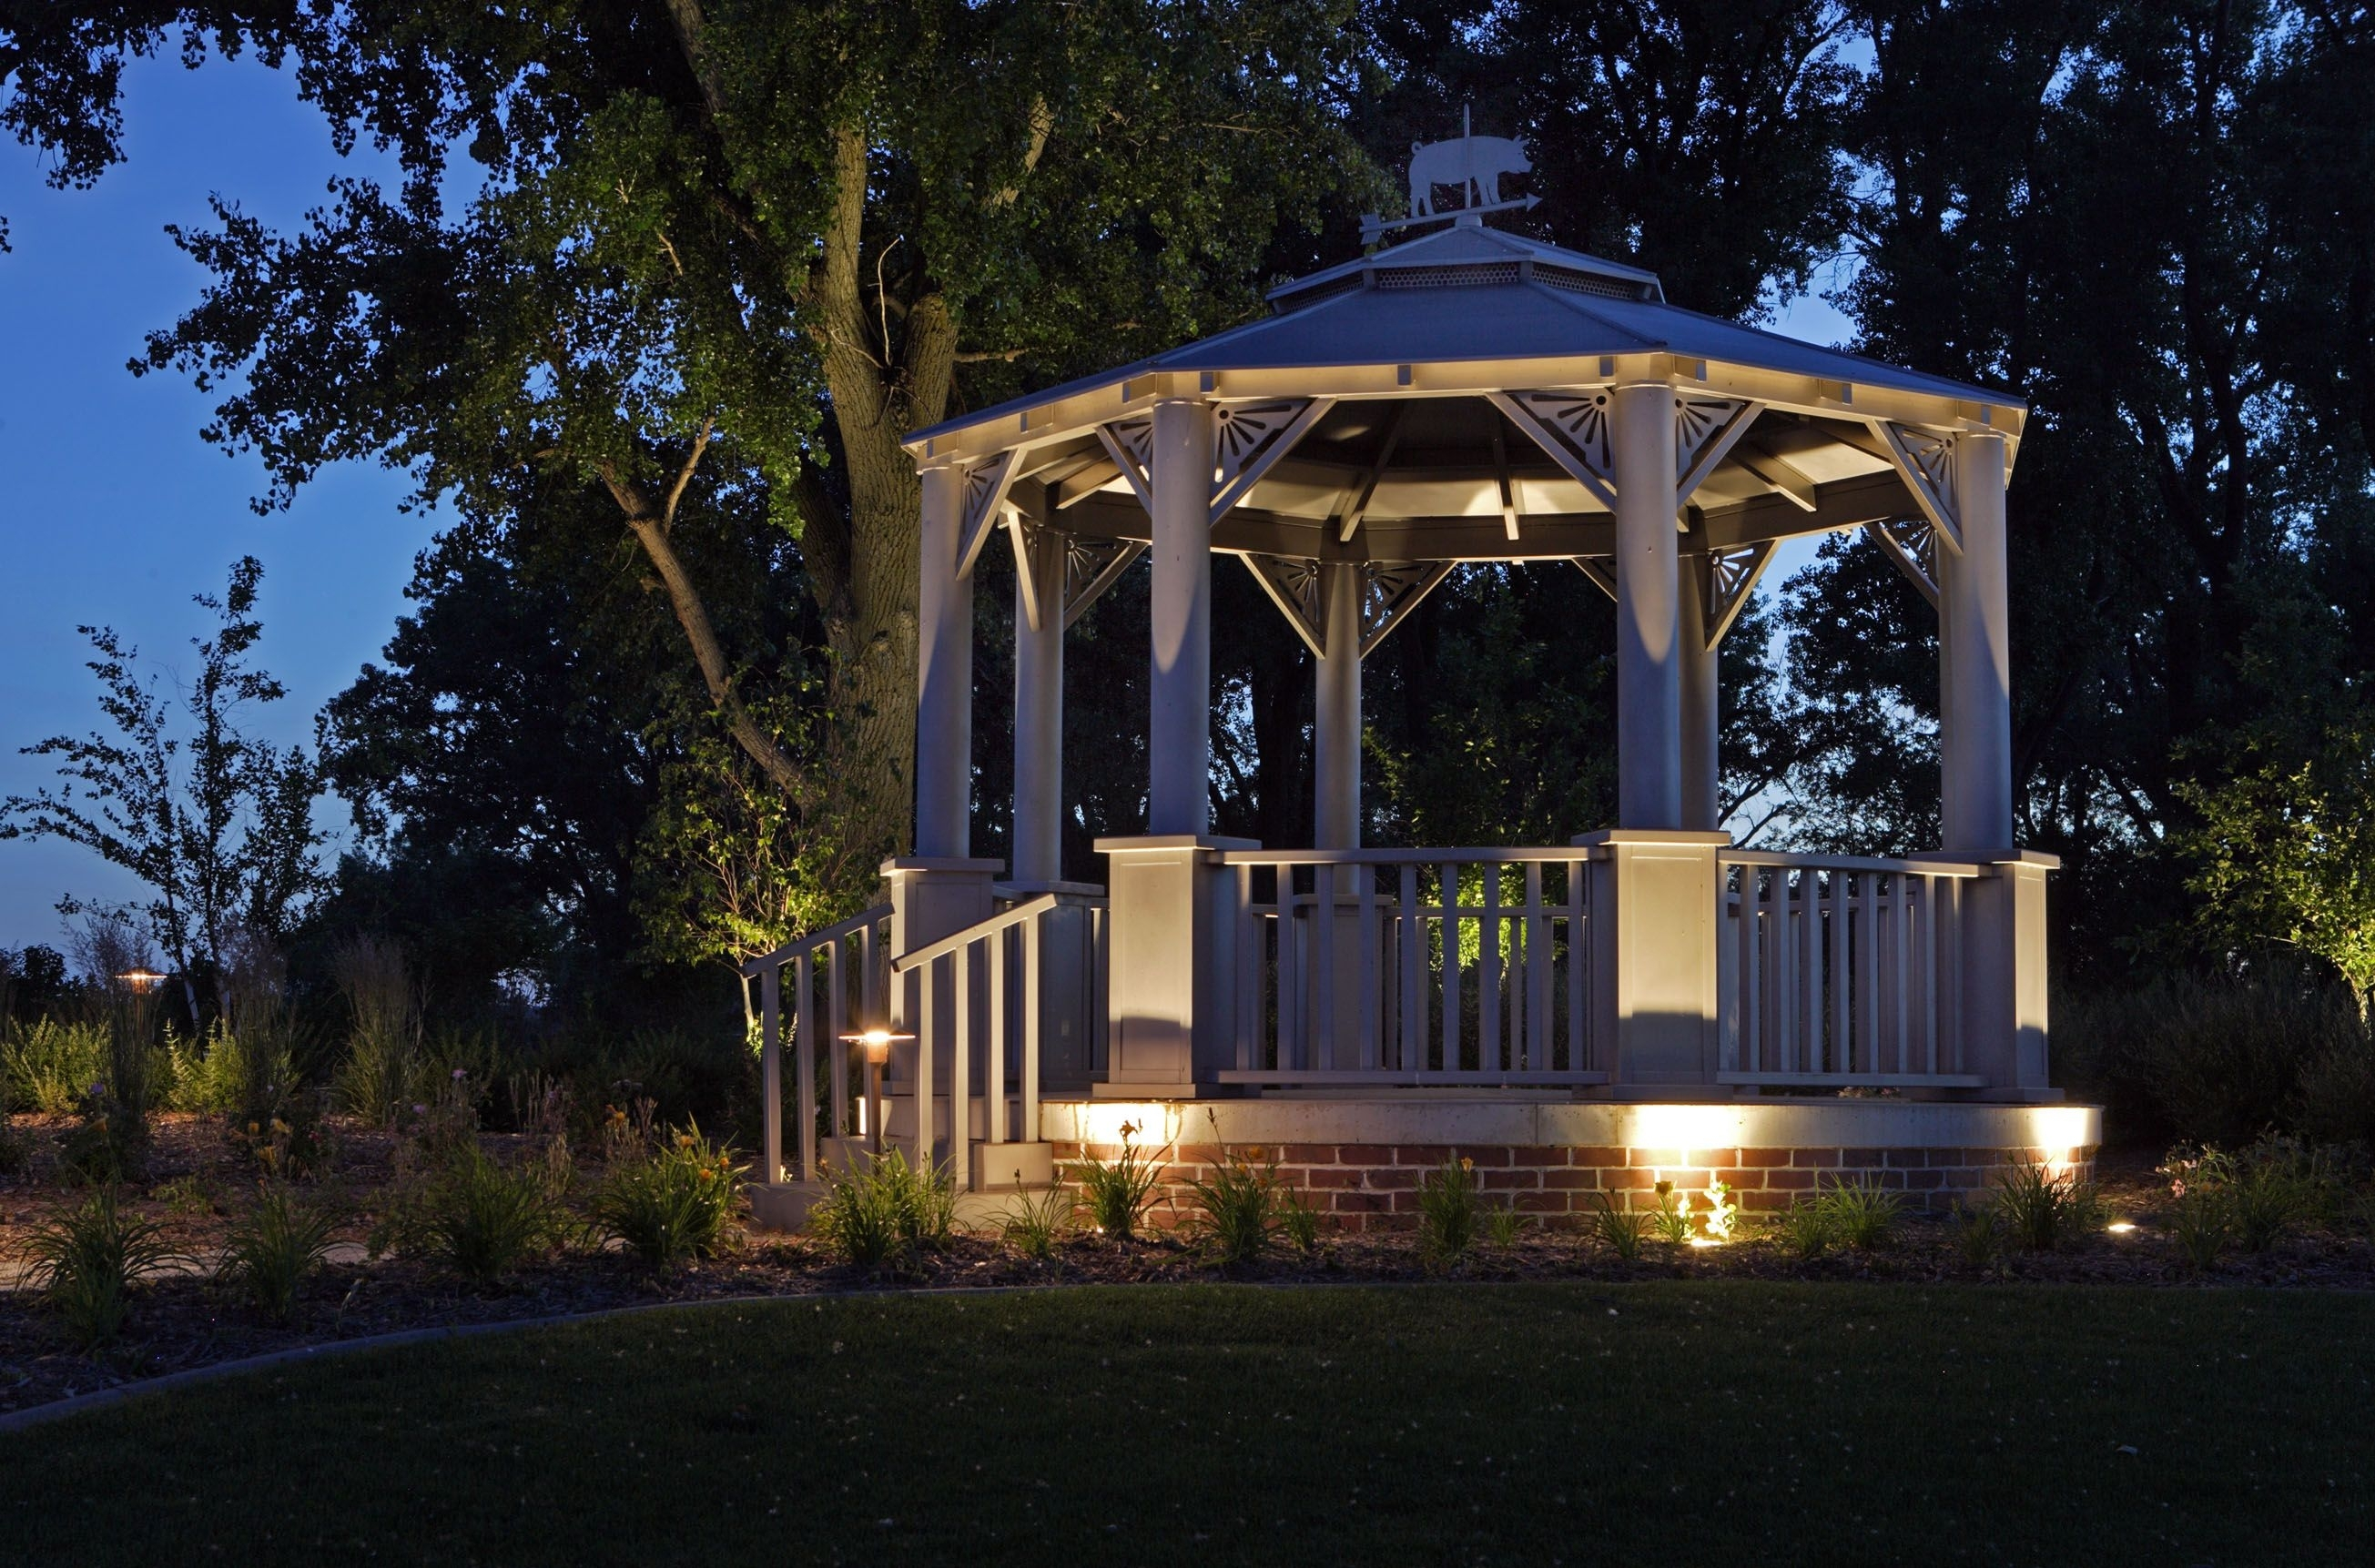 43+ Gorgeous And Easy Diy Outdoor Lighting Ideas | Pinterest in Outdoor Gazebo Lanterns (Image 3 of 20)